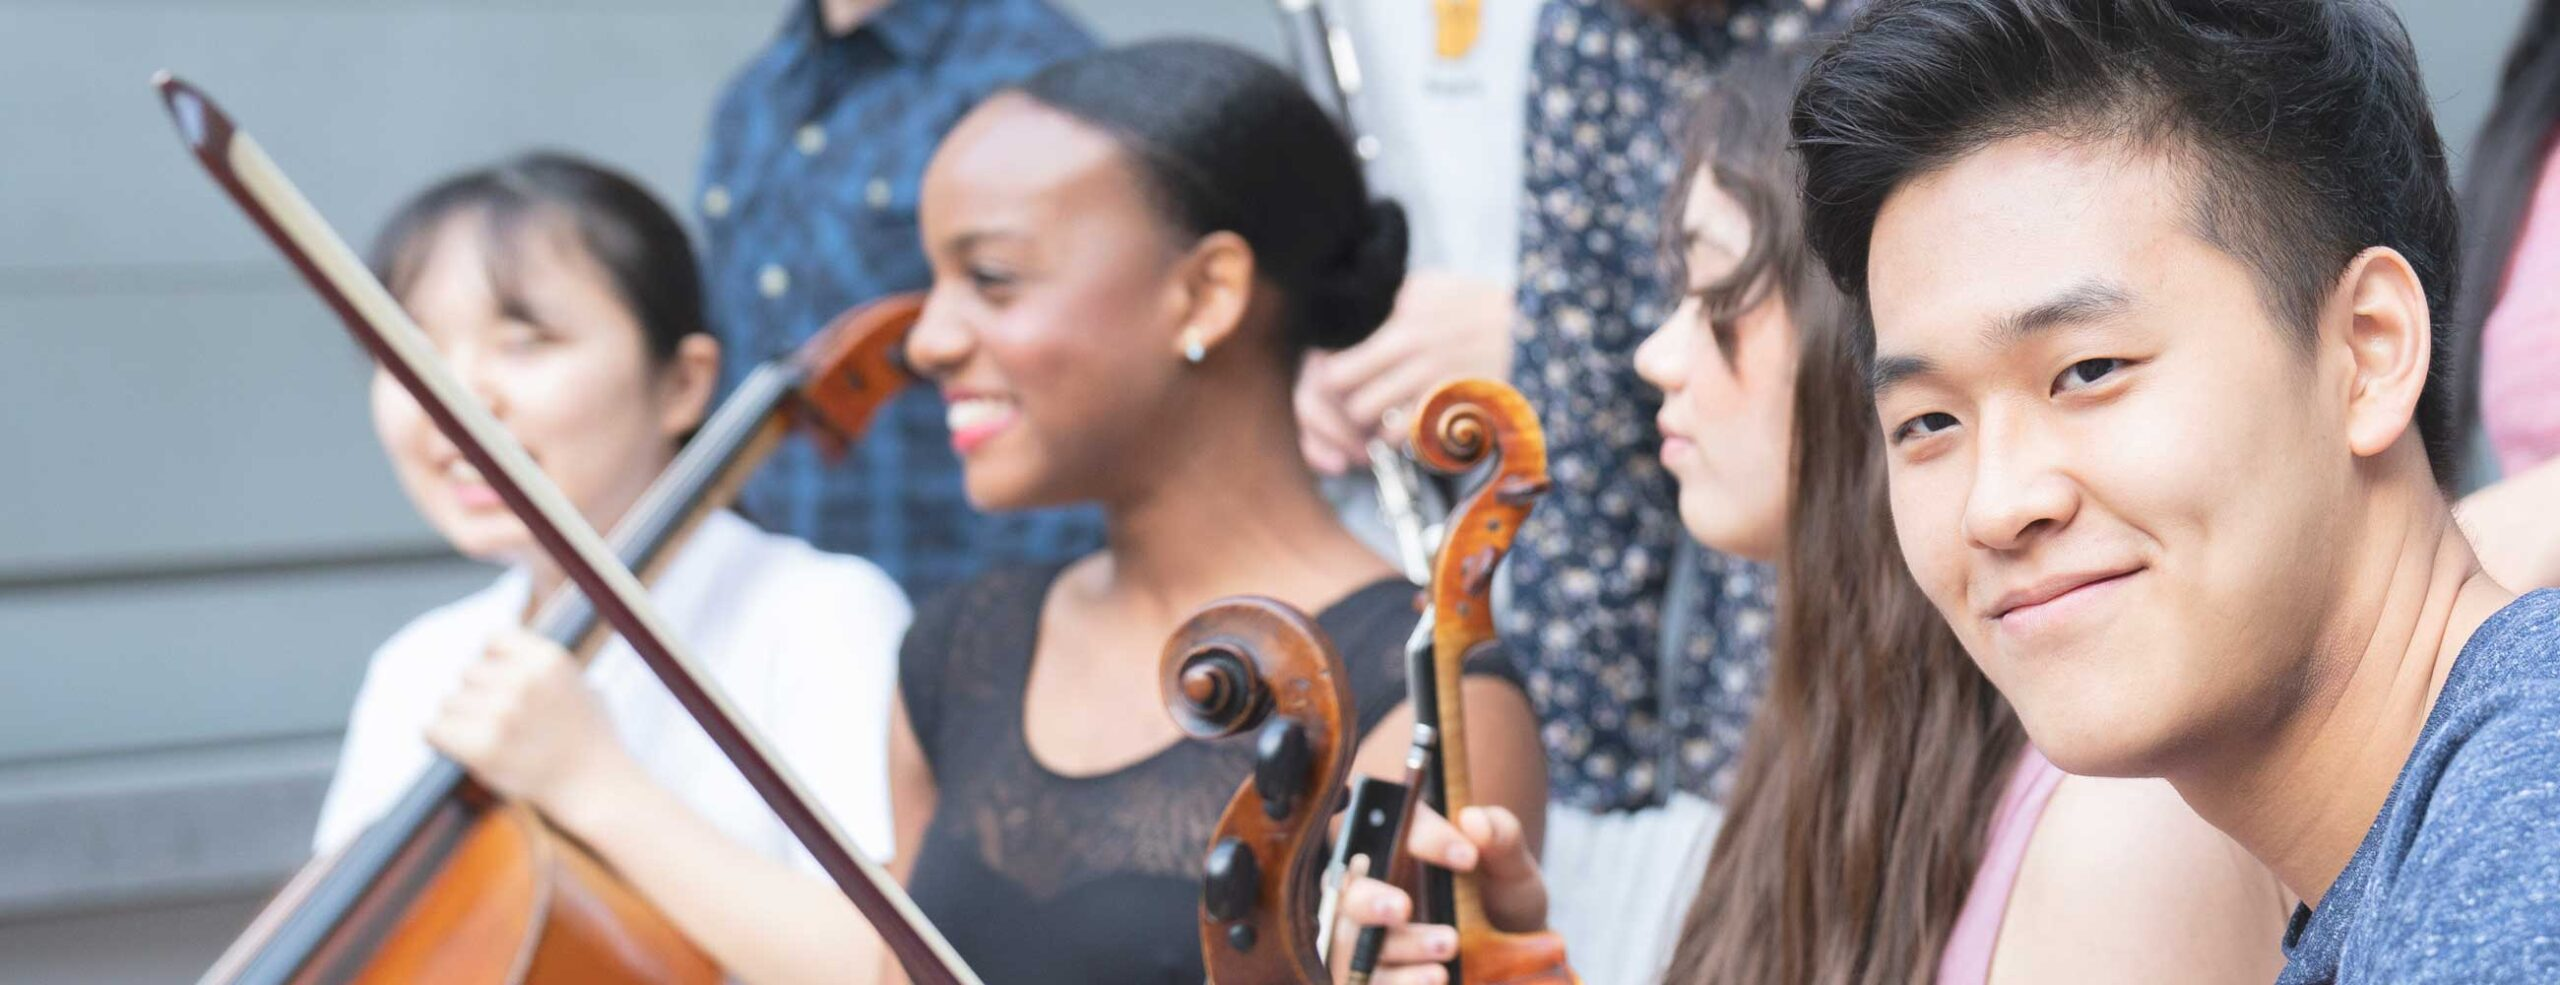 Asian student holding violin sitting to the right of Asian student with cello and Black dancer